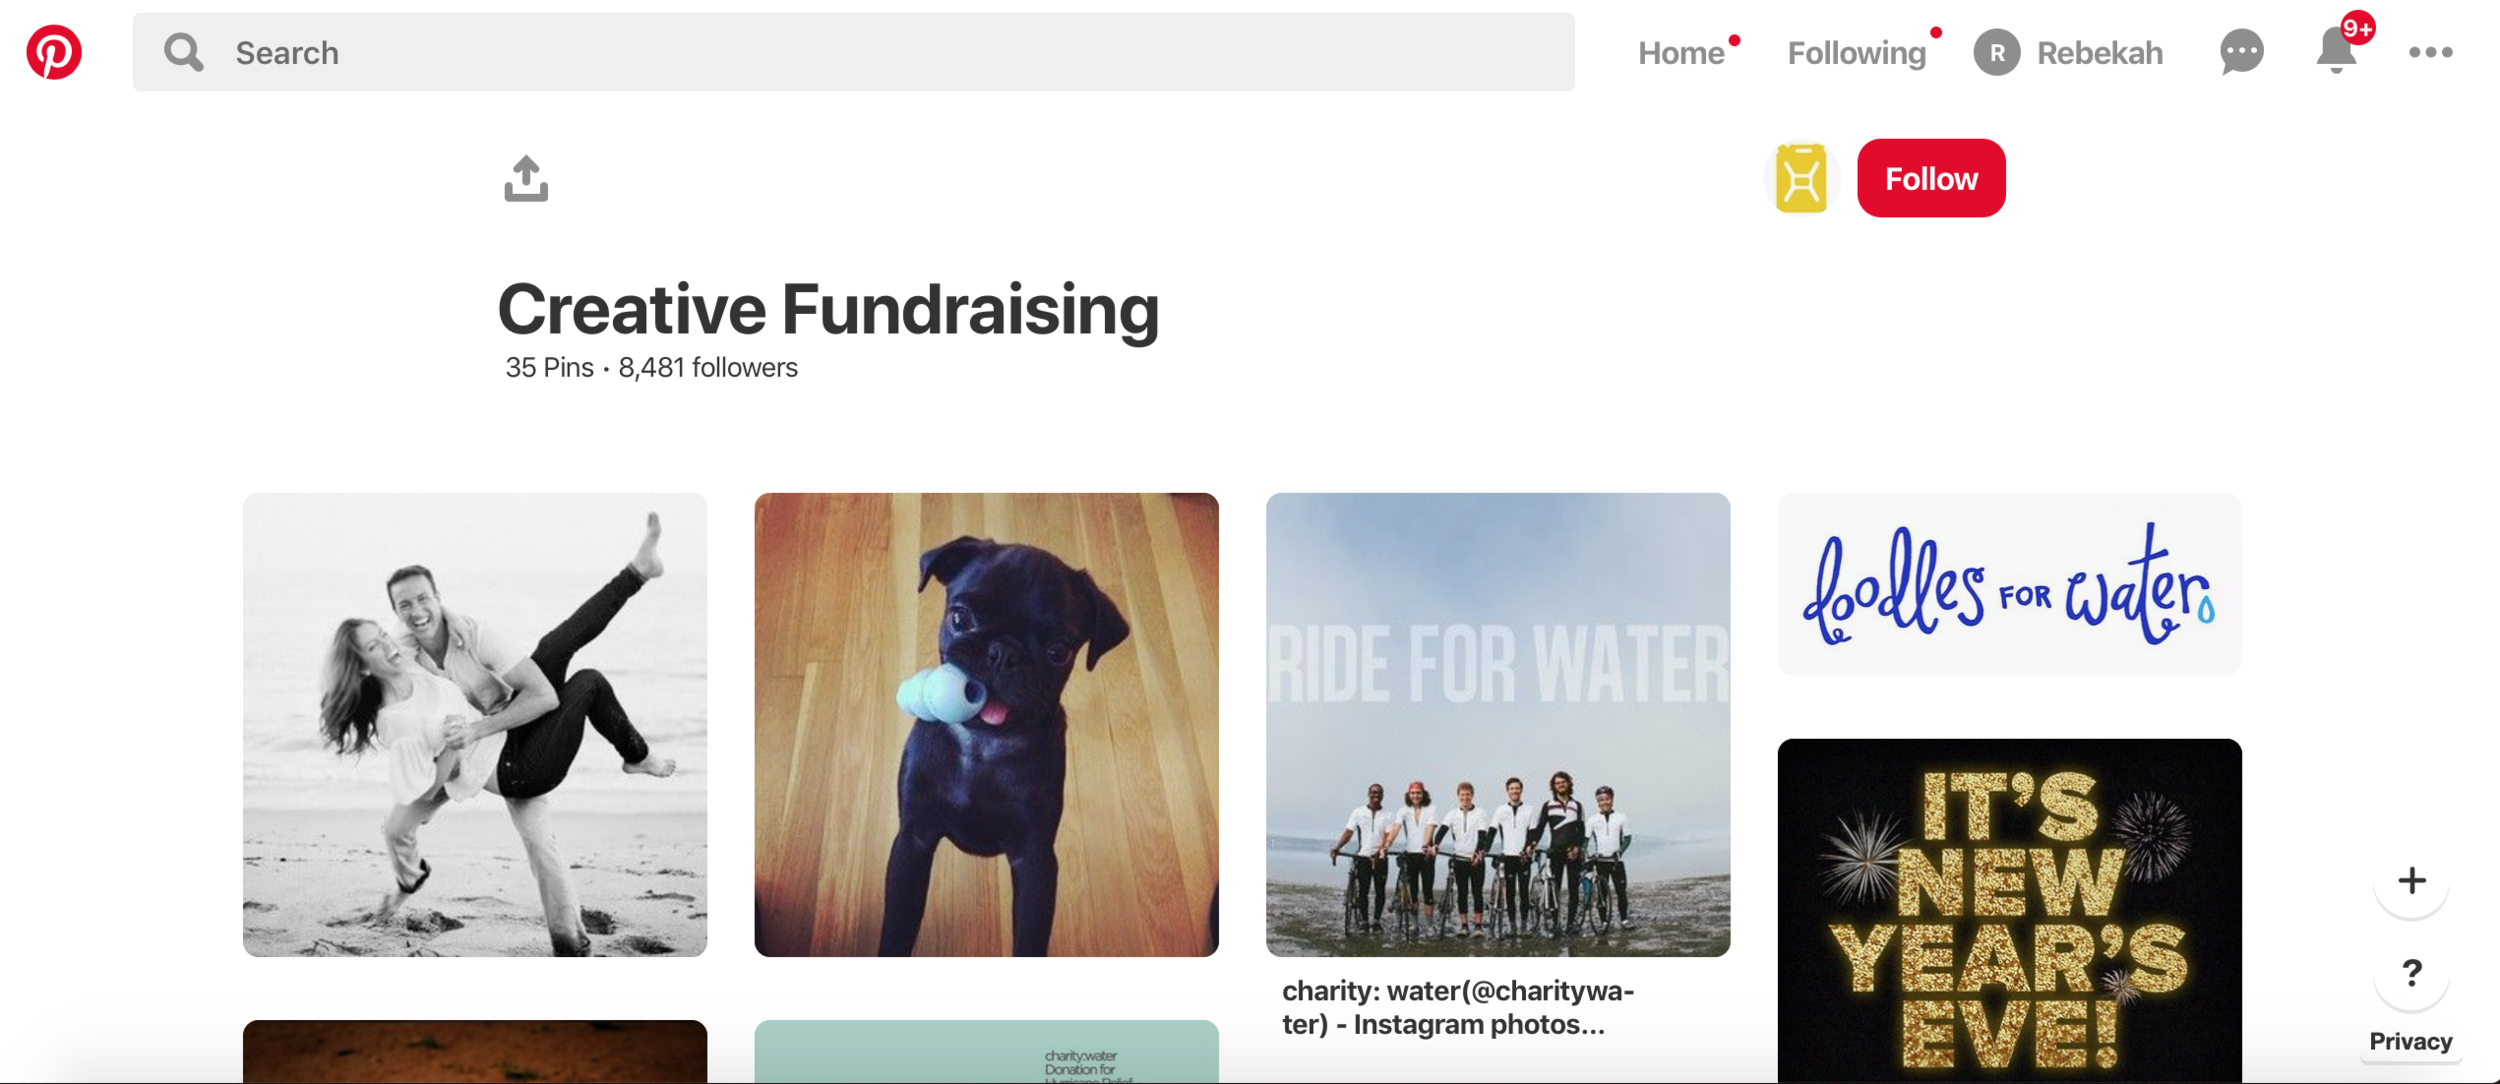 Nonprofit marketing ideas can be creative using pinterest.